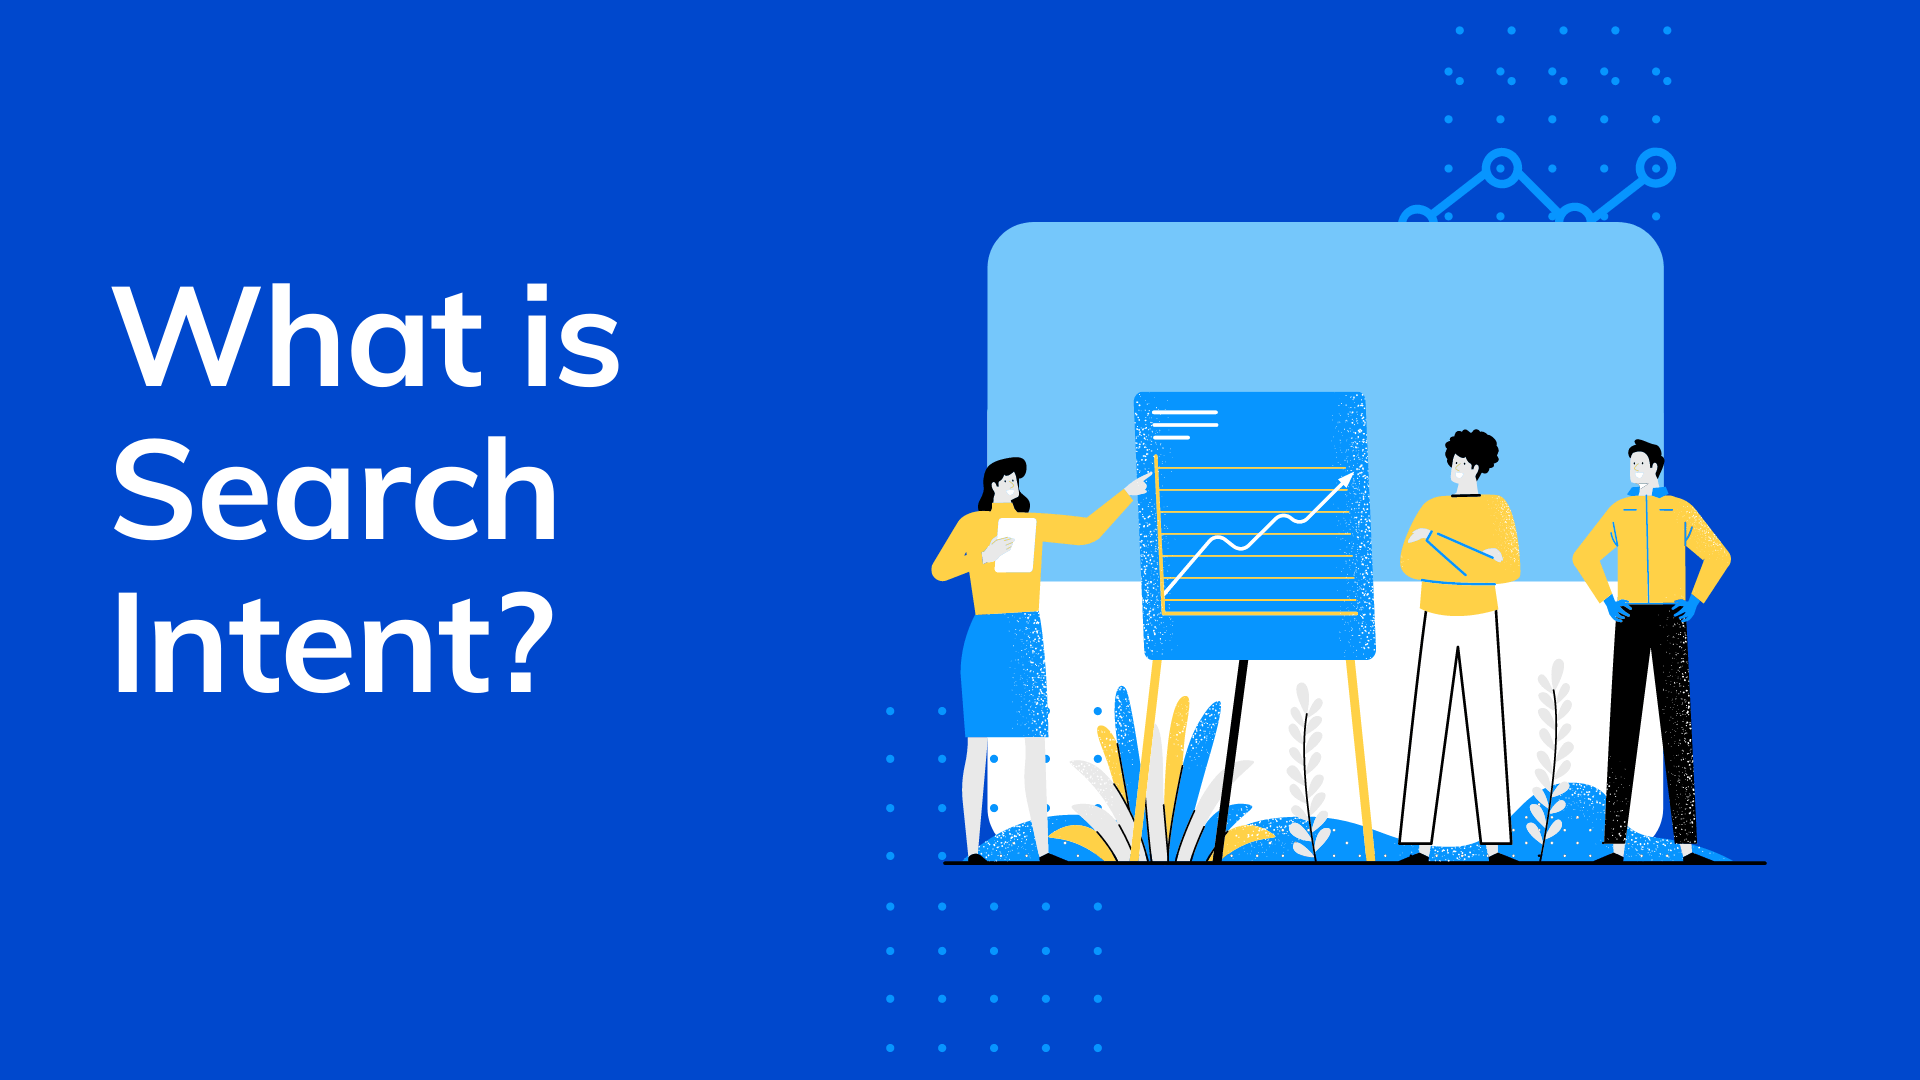 What is Search Intent?